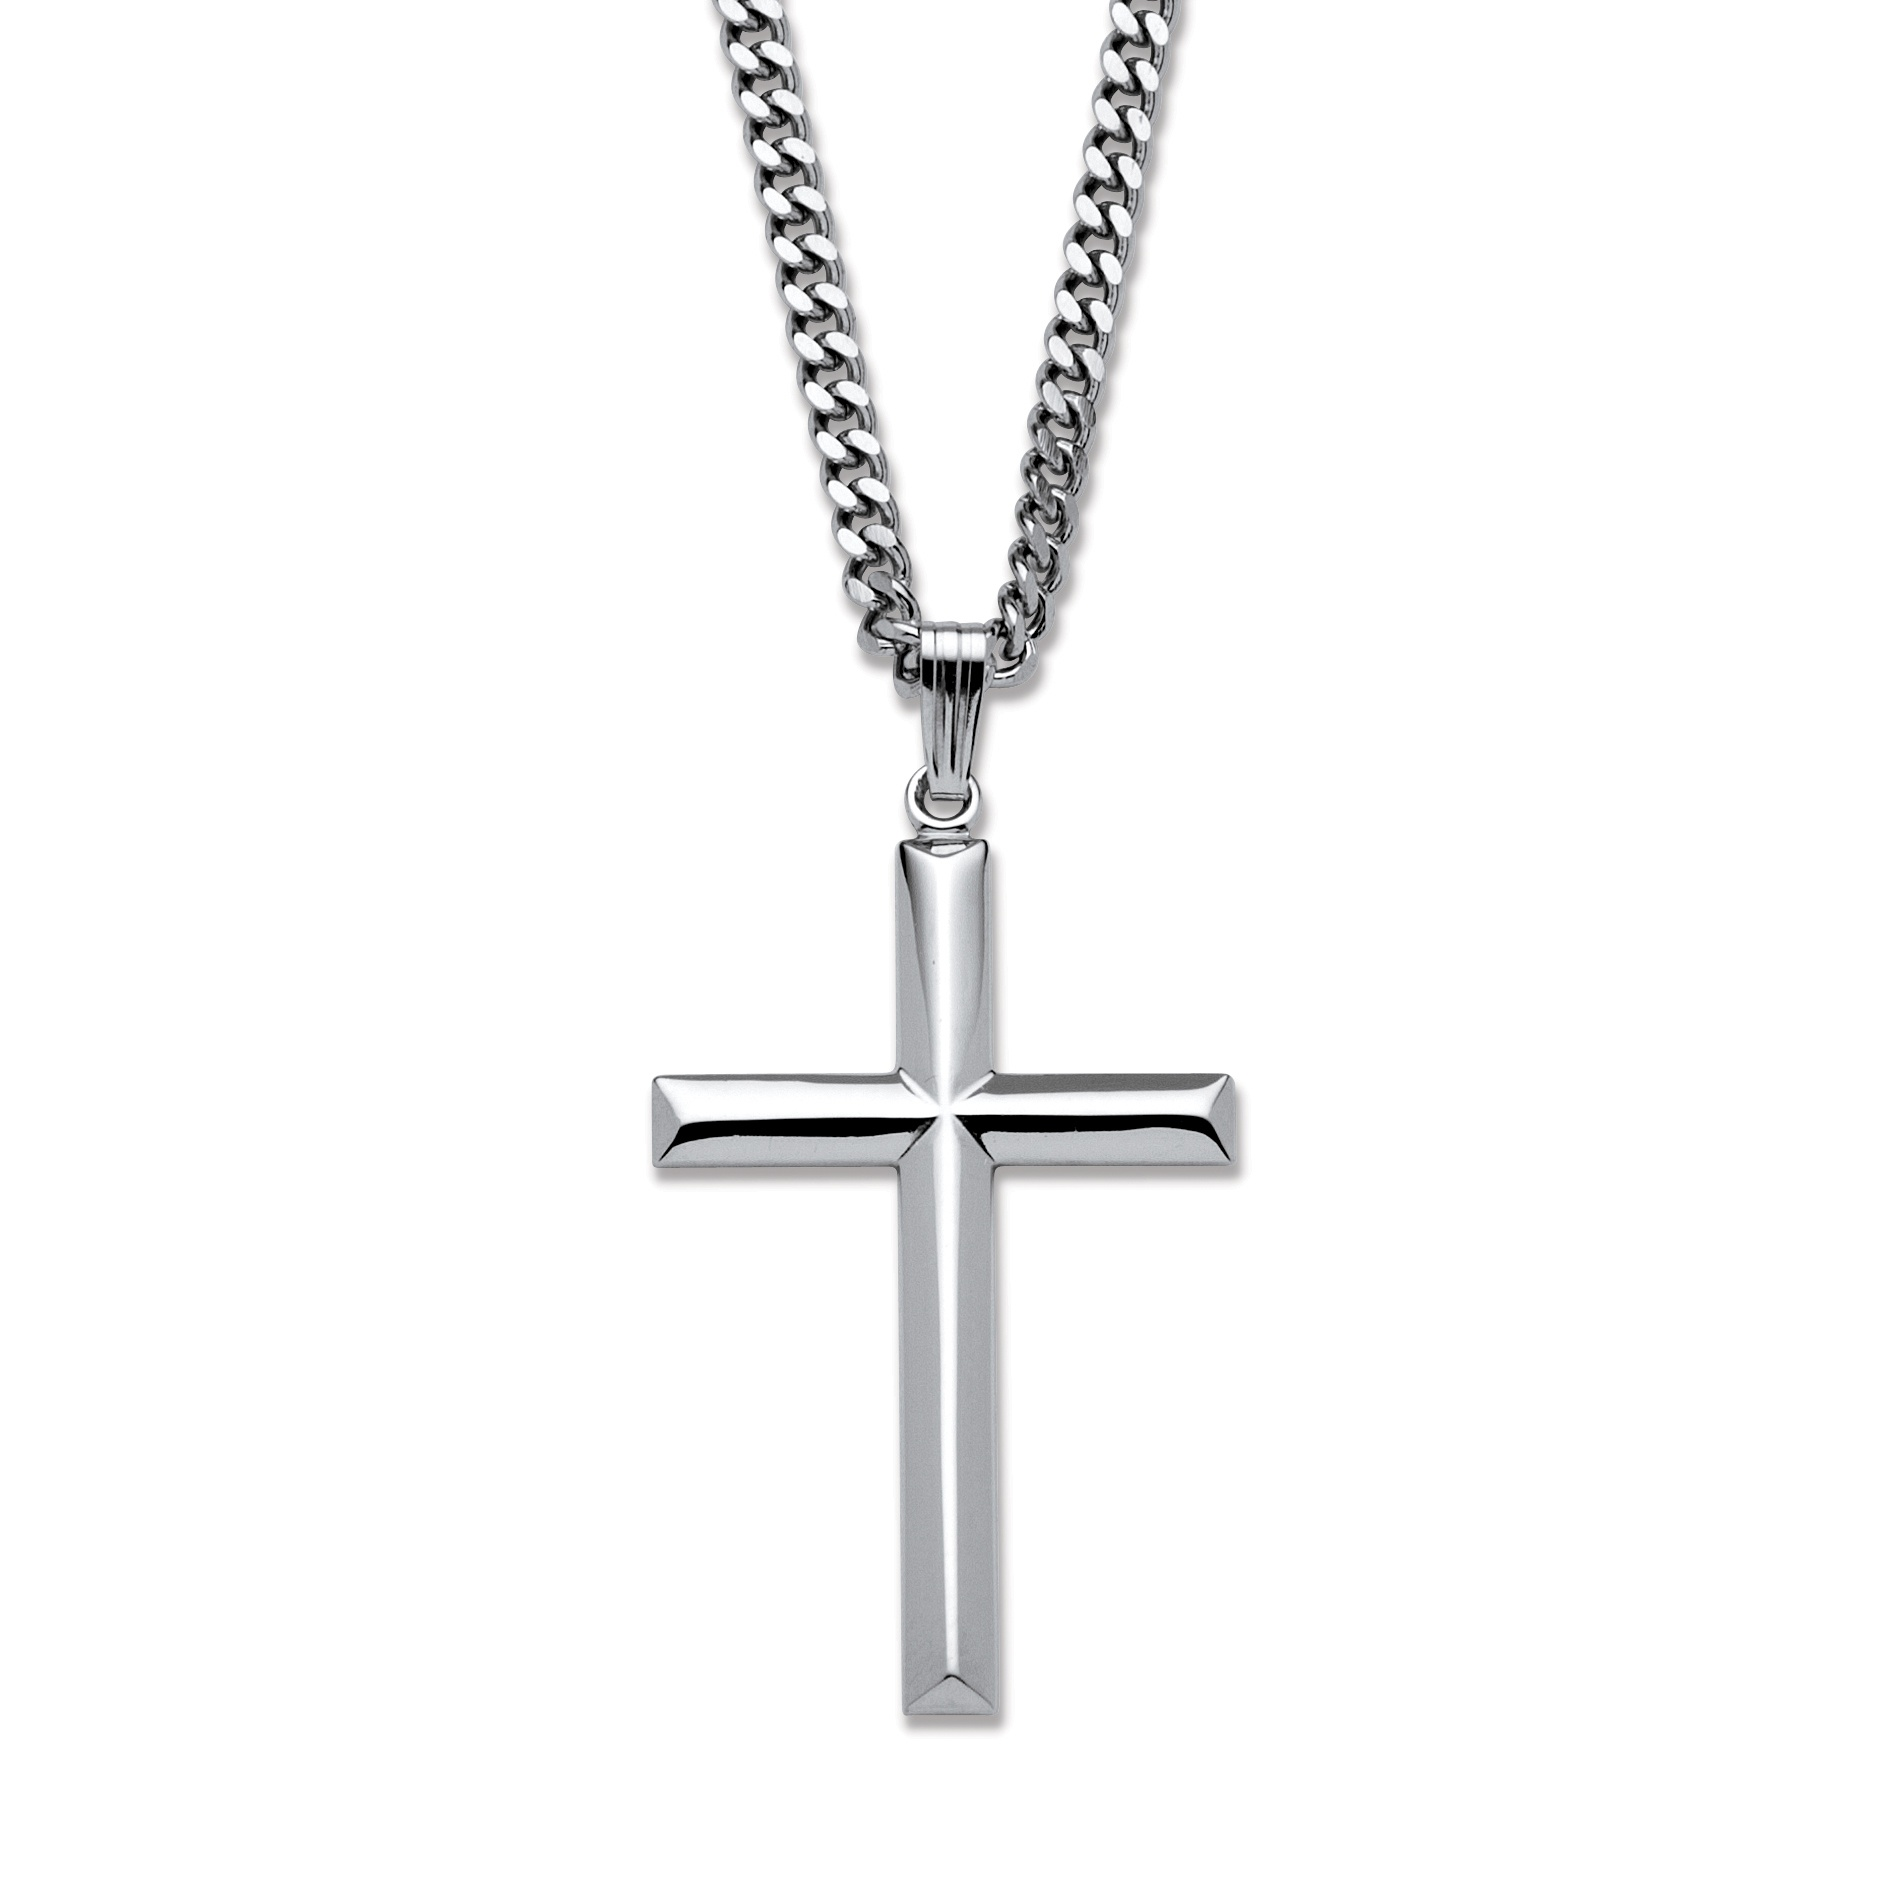 punk intl stainless round style s square pendant forever female olen skull necklace chain european letter men cross titanium steel